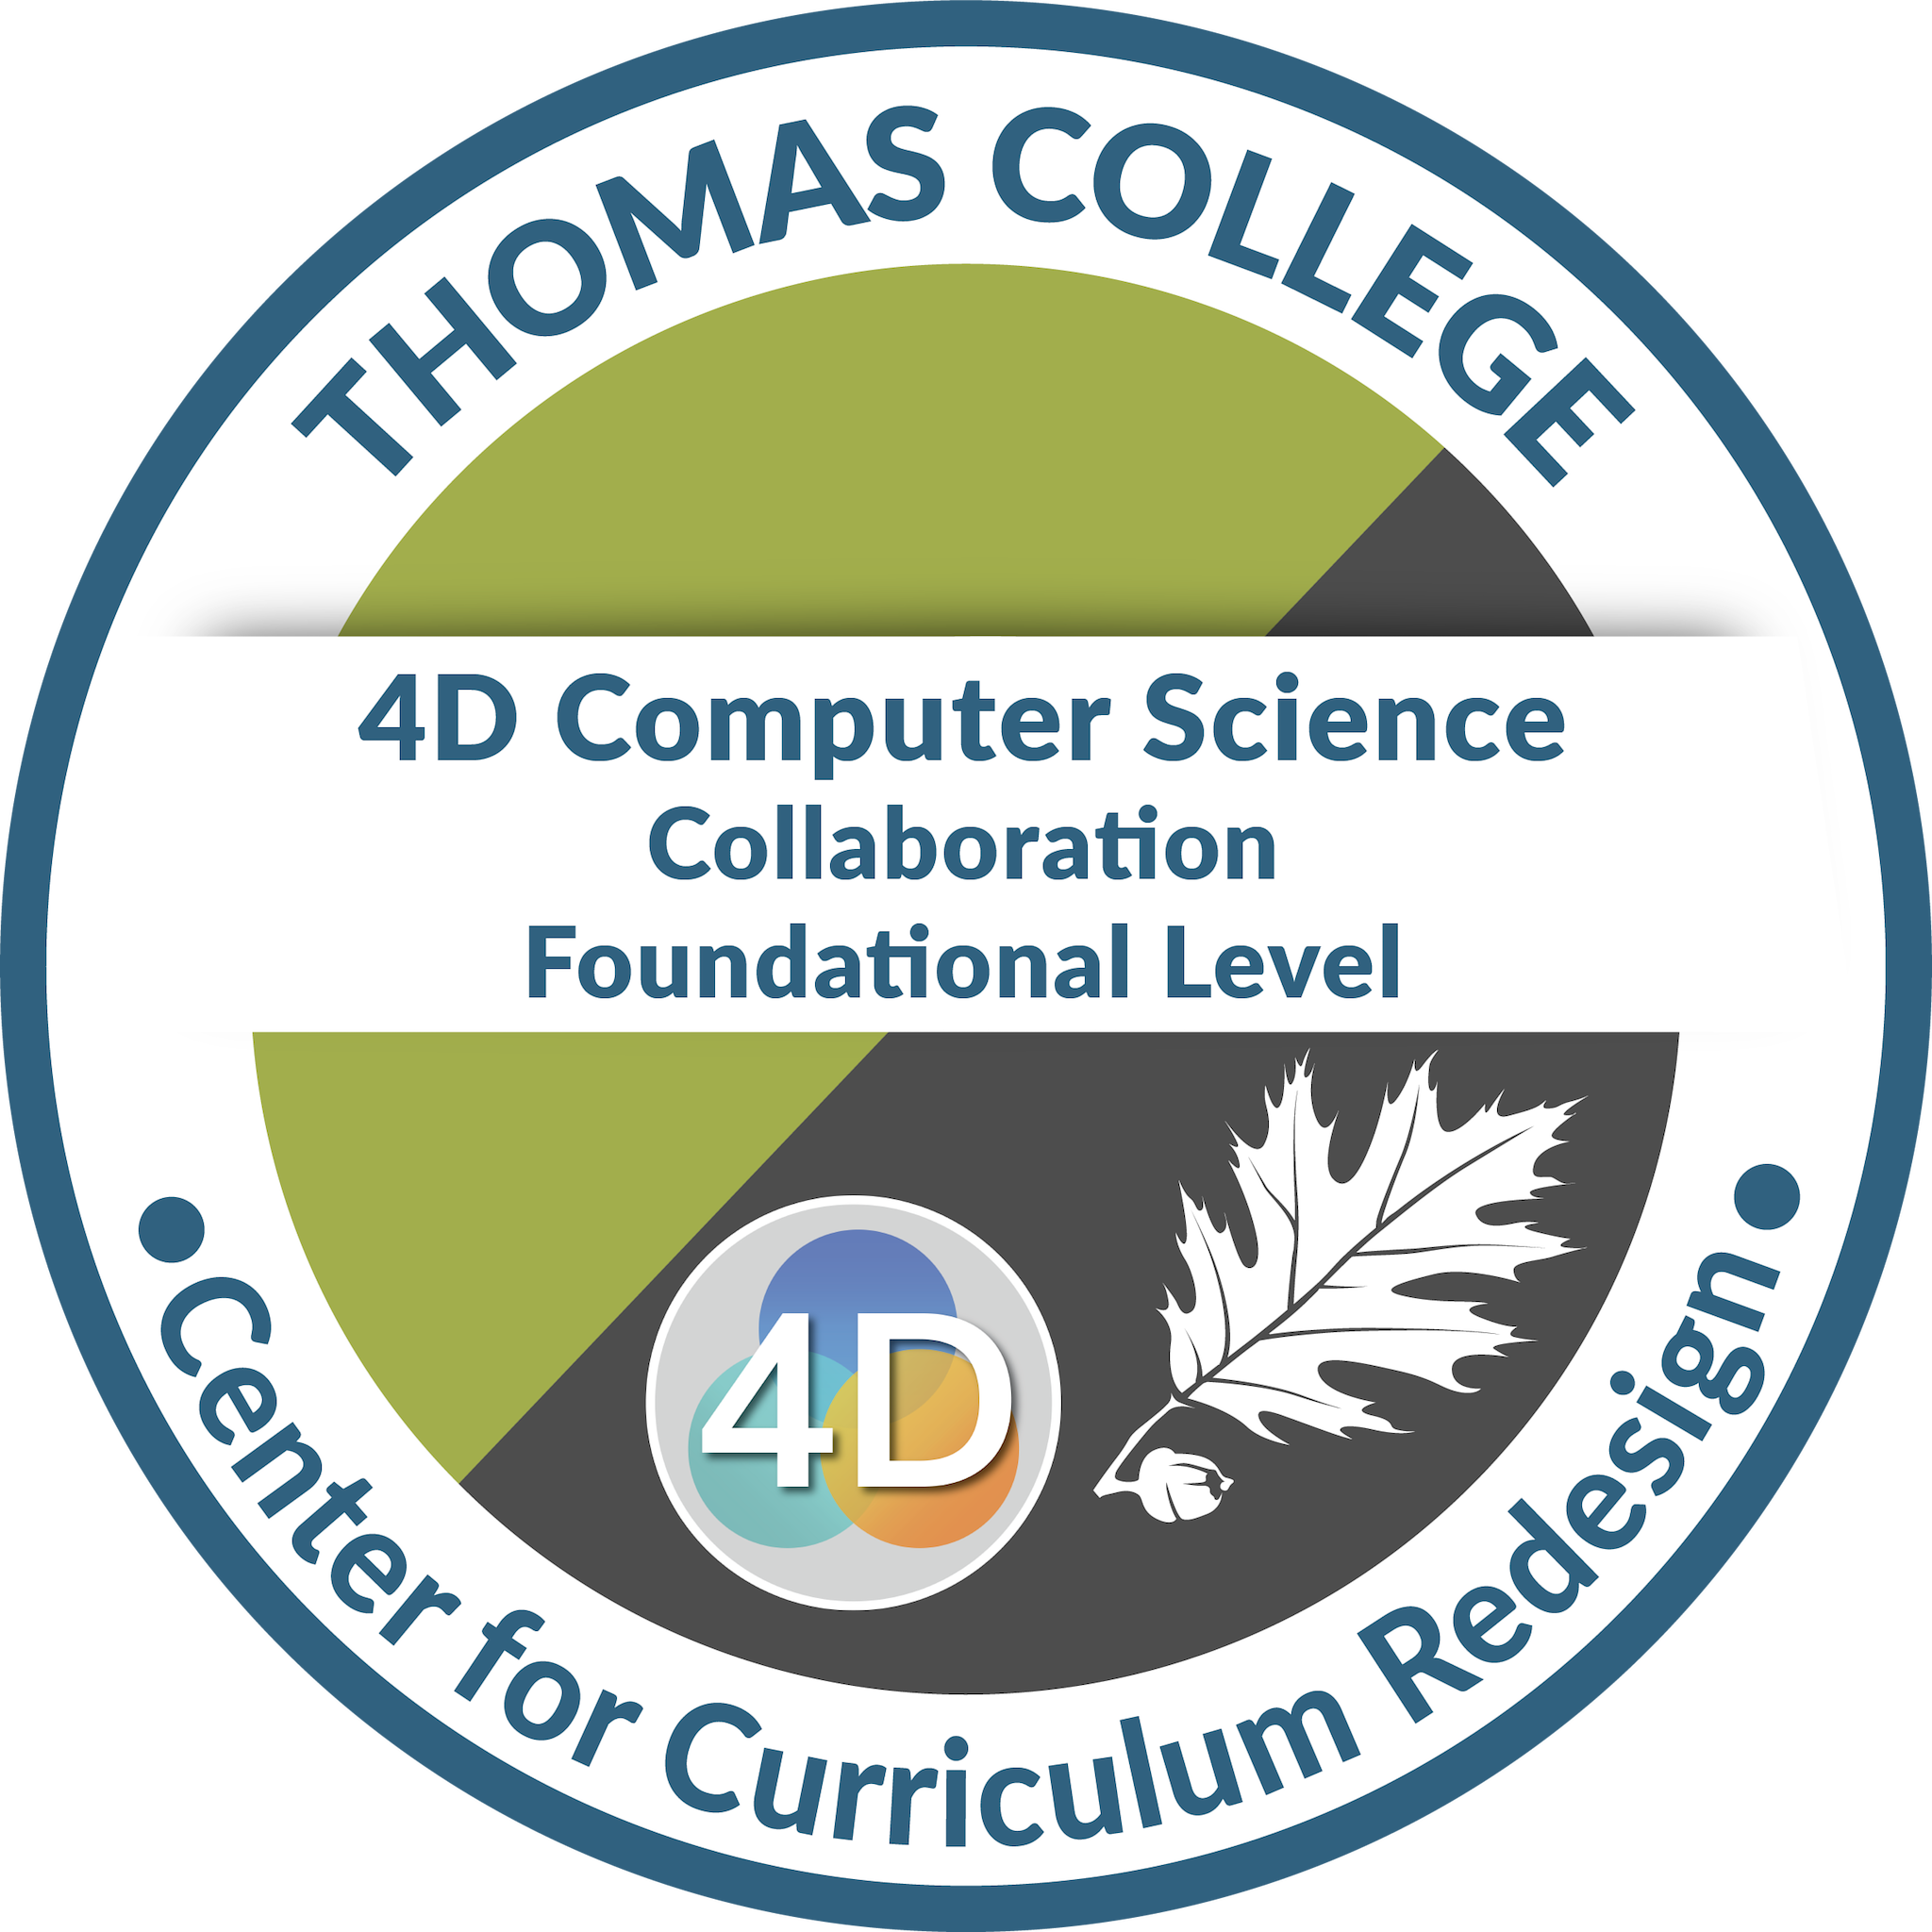 4D Computer Science: Collaboration